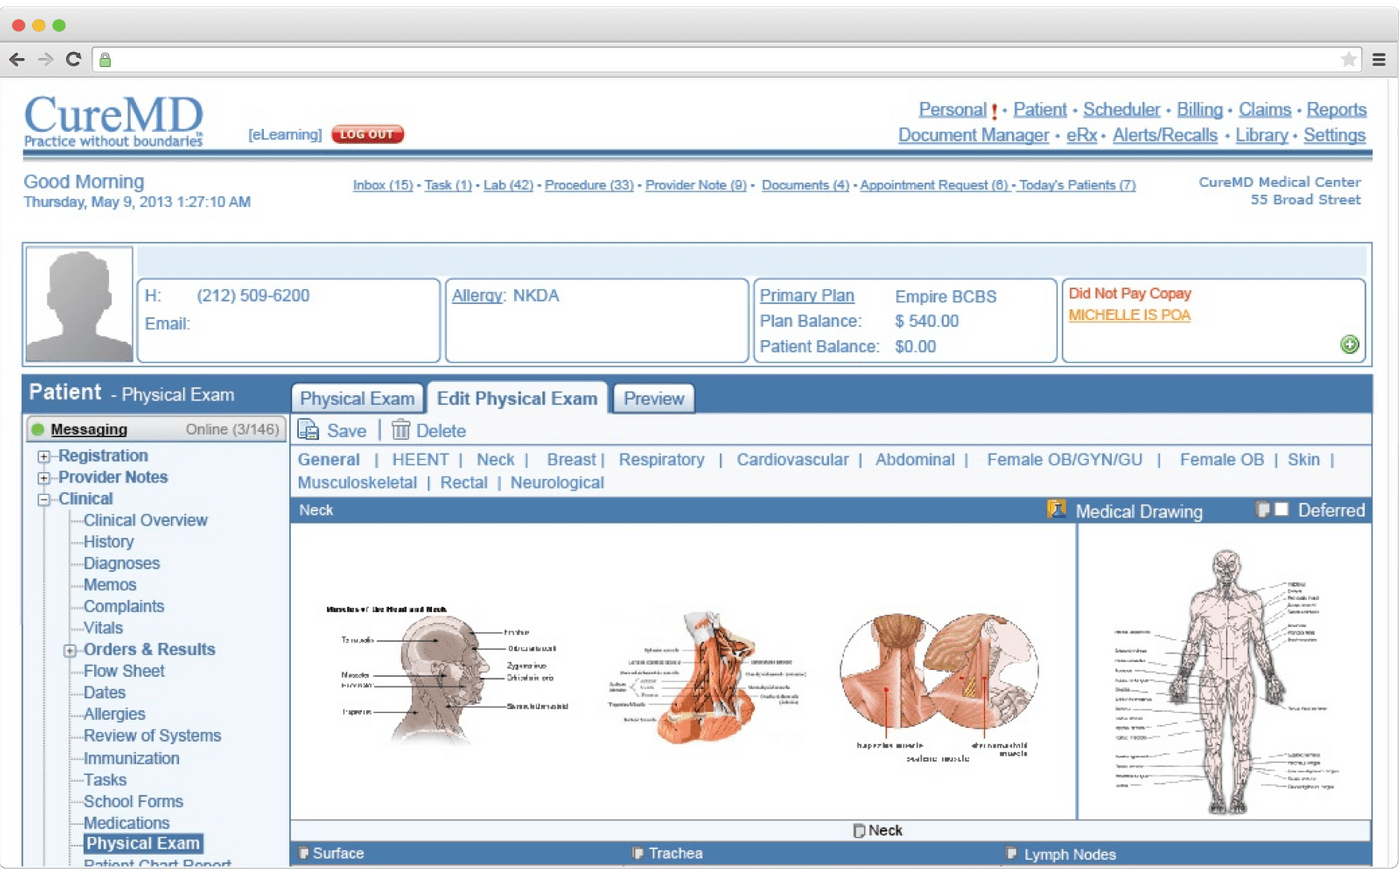 Task management in EHR software